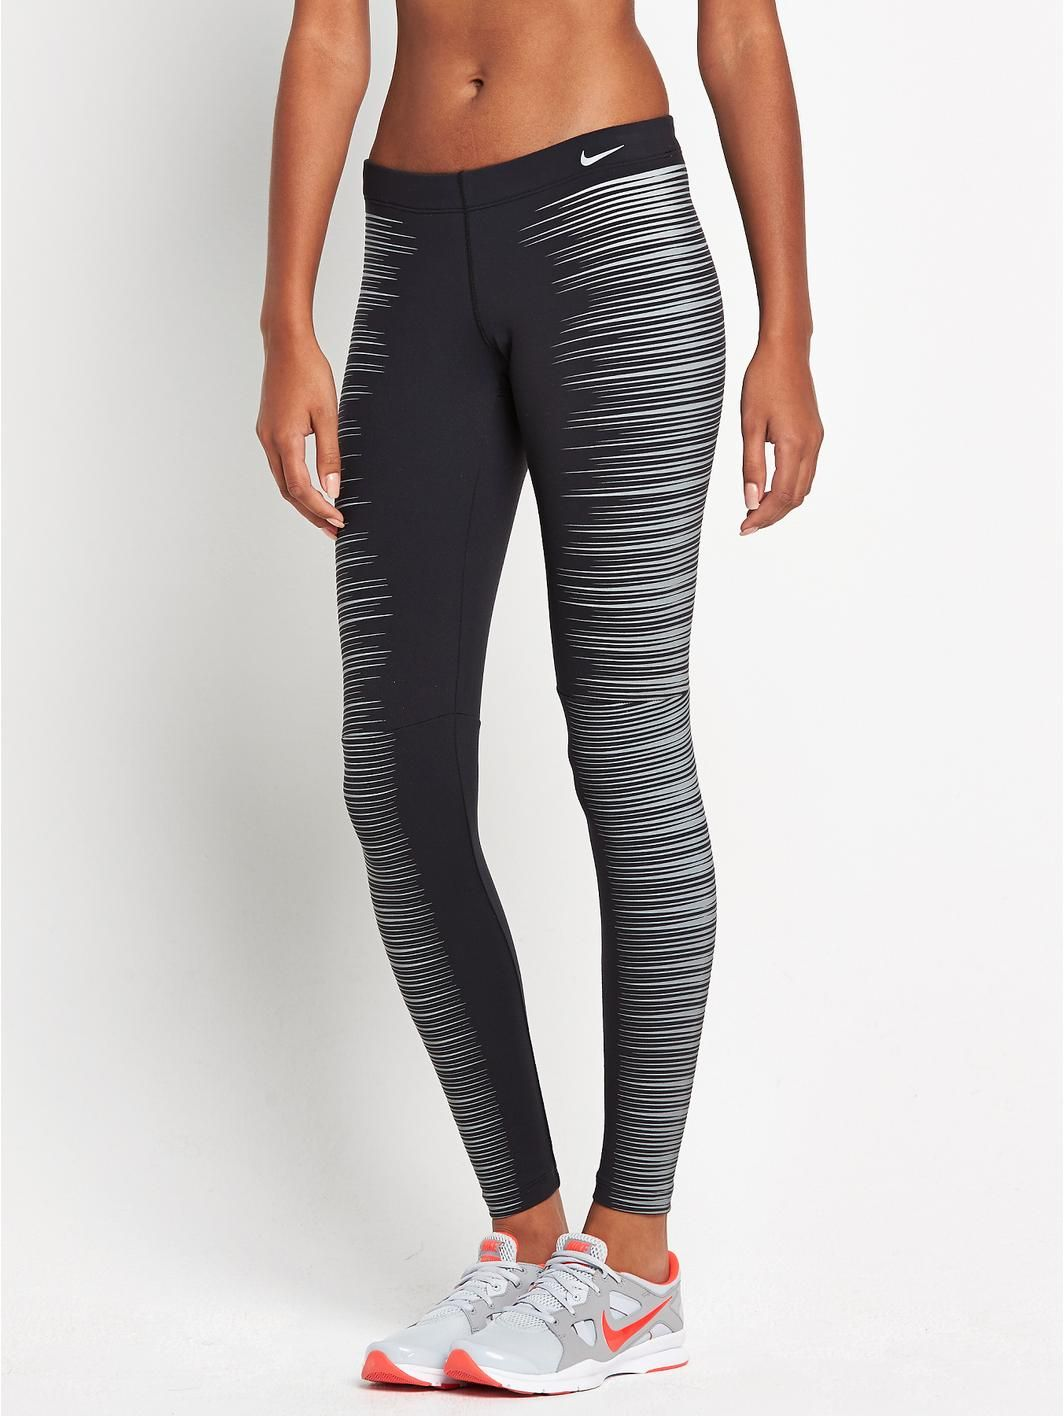 Details about ADIDAS WOMEN'S ATHLETIC ESS LIN Tights JOGGER